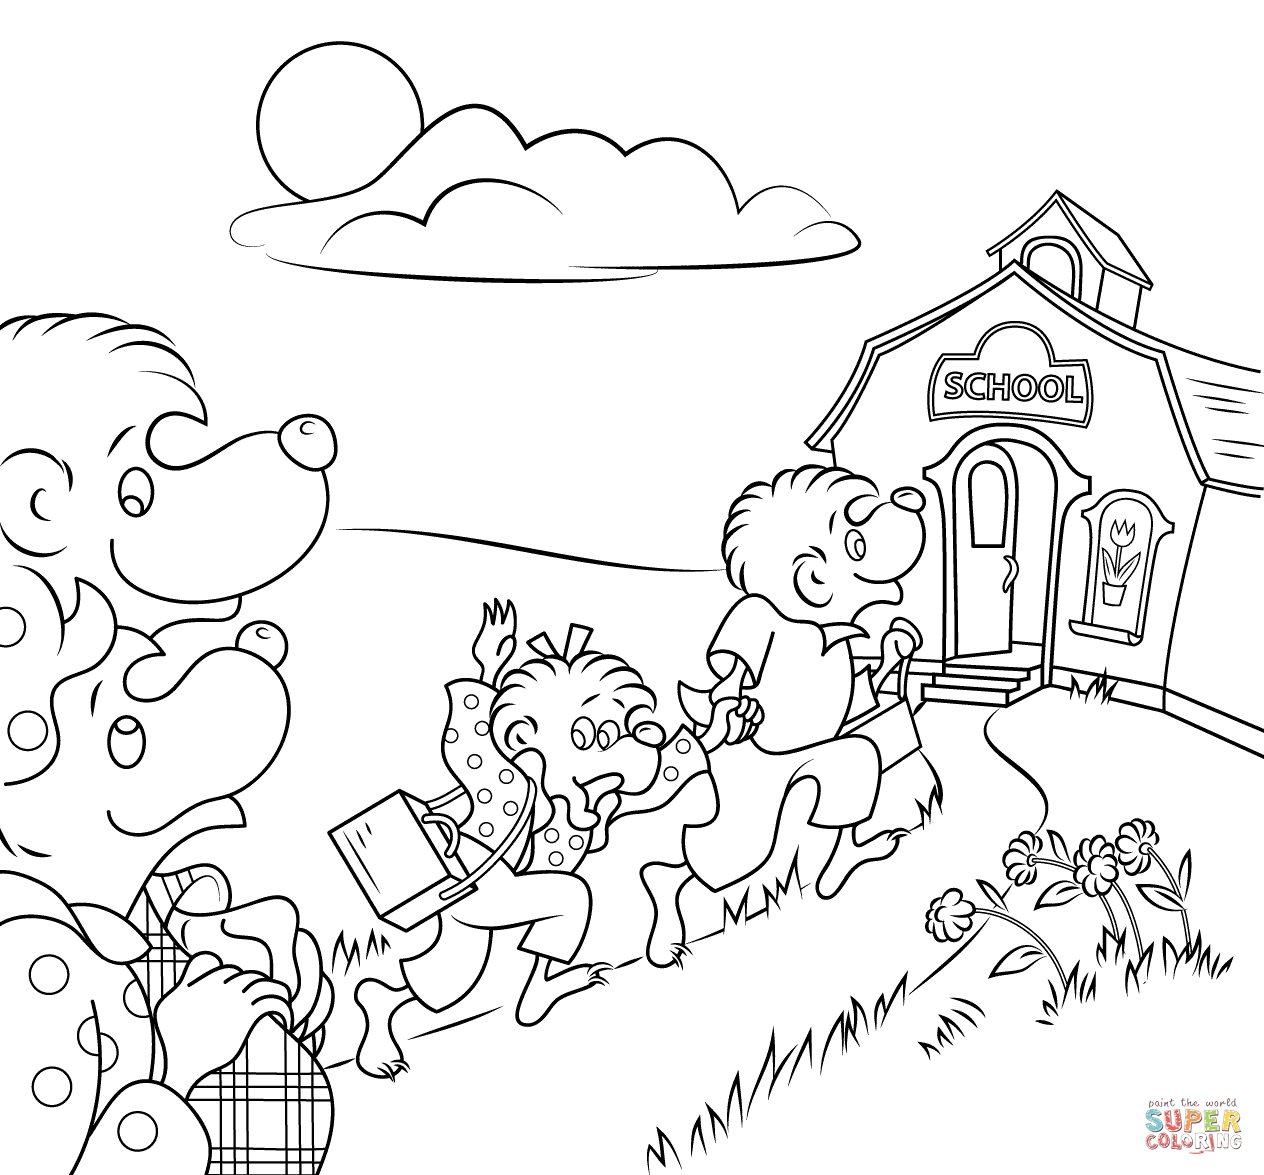 berenstain bears coloring pages top 25 berenstain bears coloring pages for your toddlers bears pages berenstain coloring